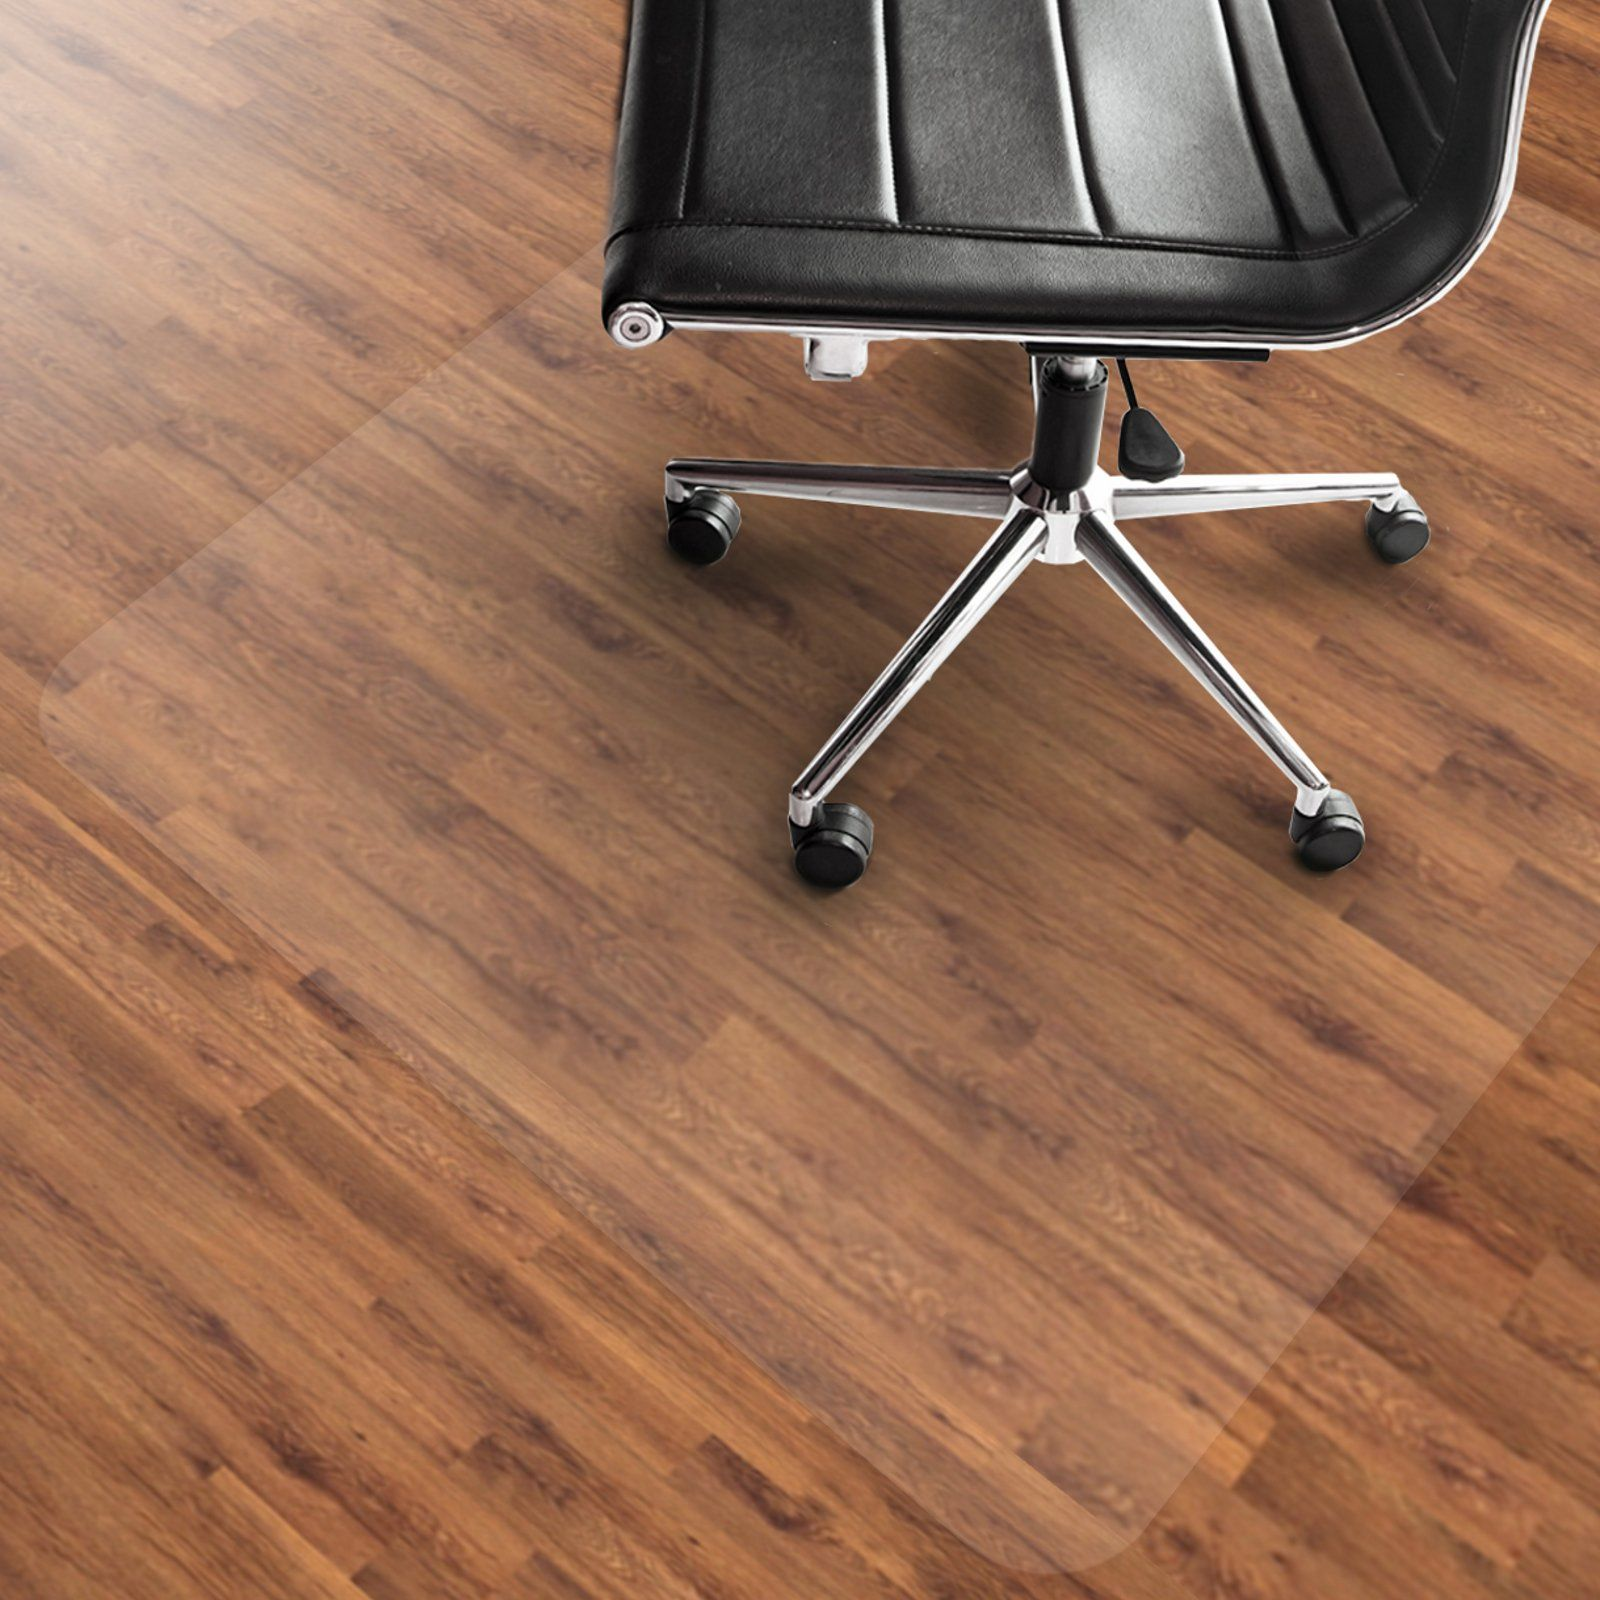 Amazing benefits and uses of office chair mats Office